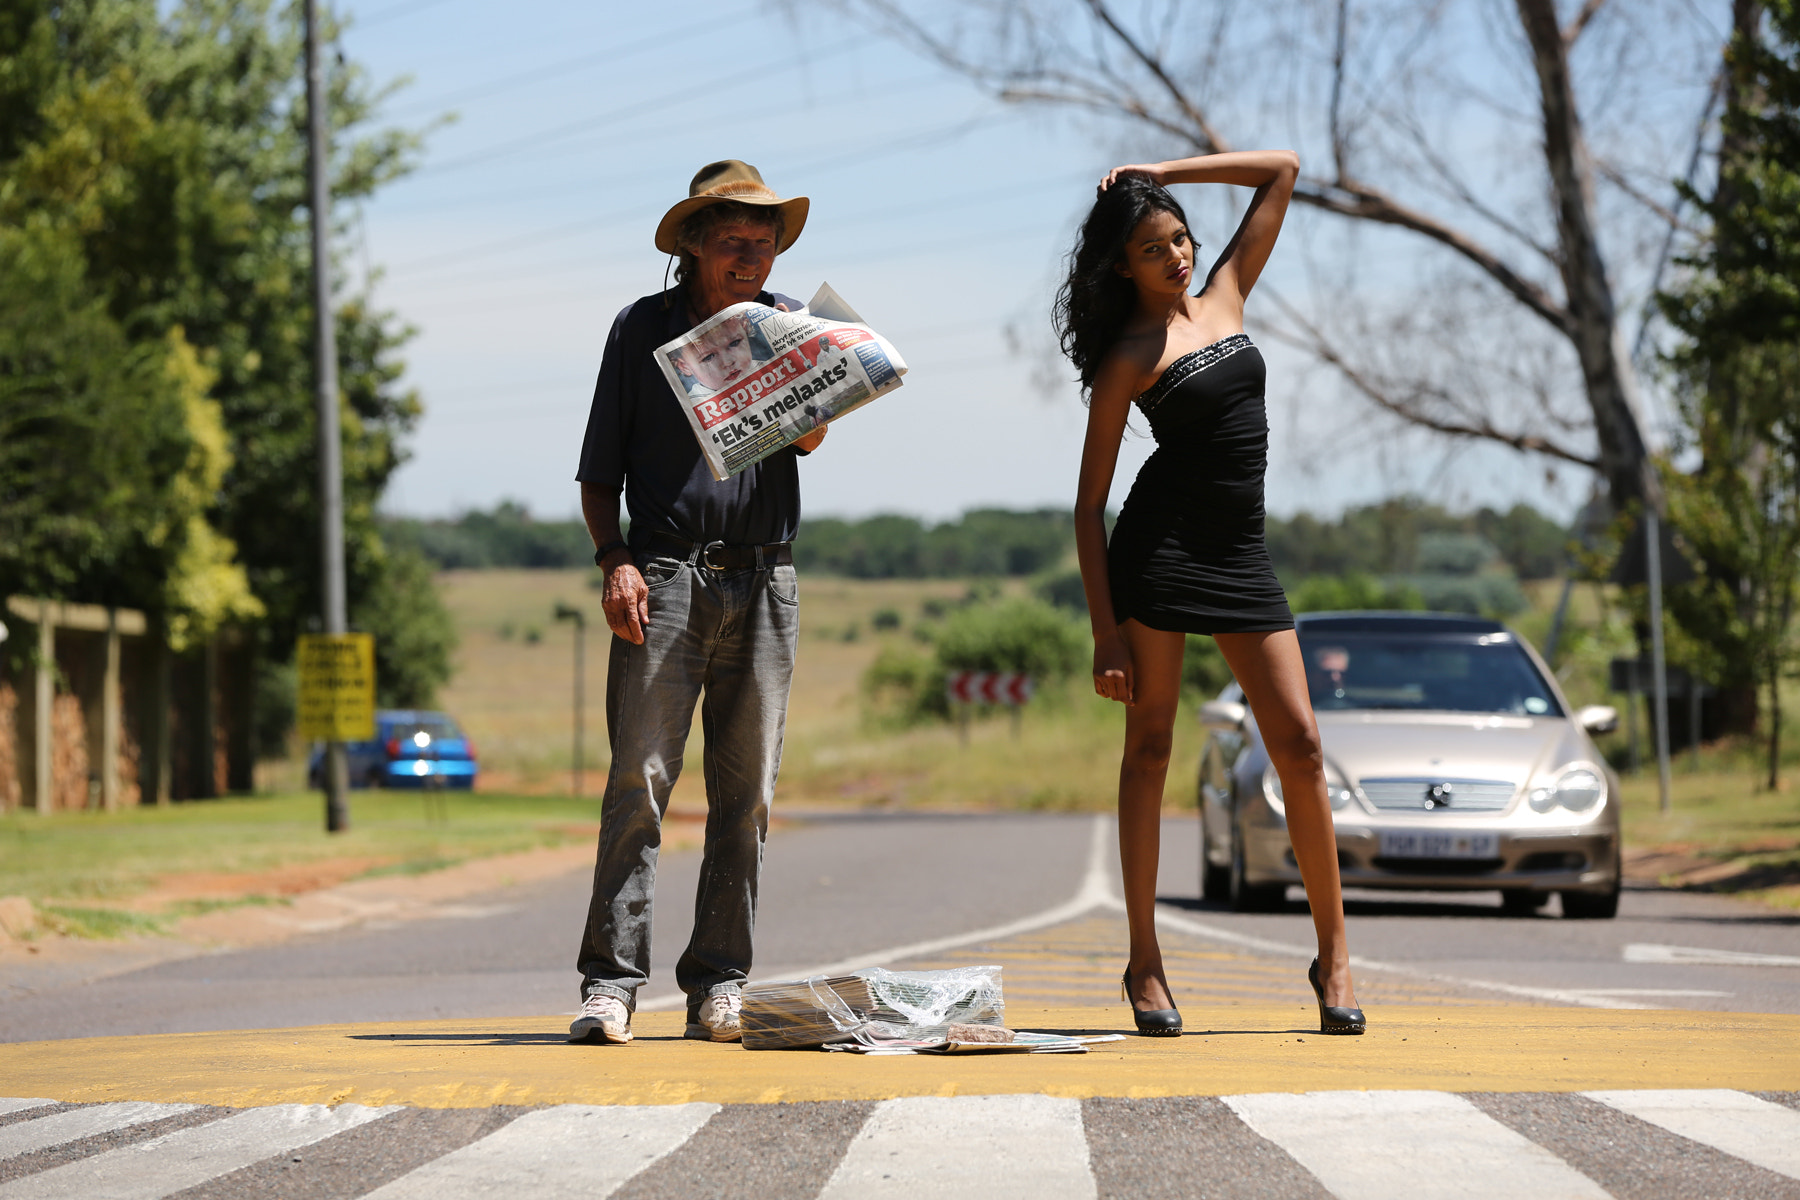 Photograph How to sell a newspaper by Pieter Oosthuysen on 500px